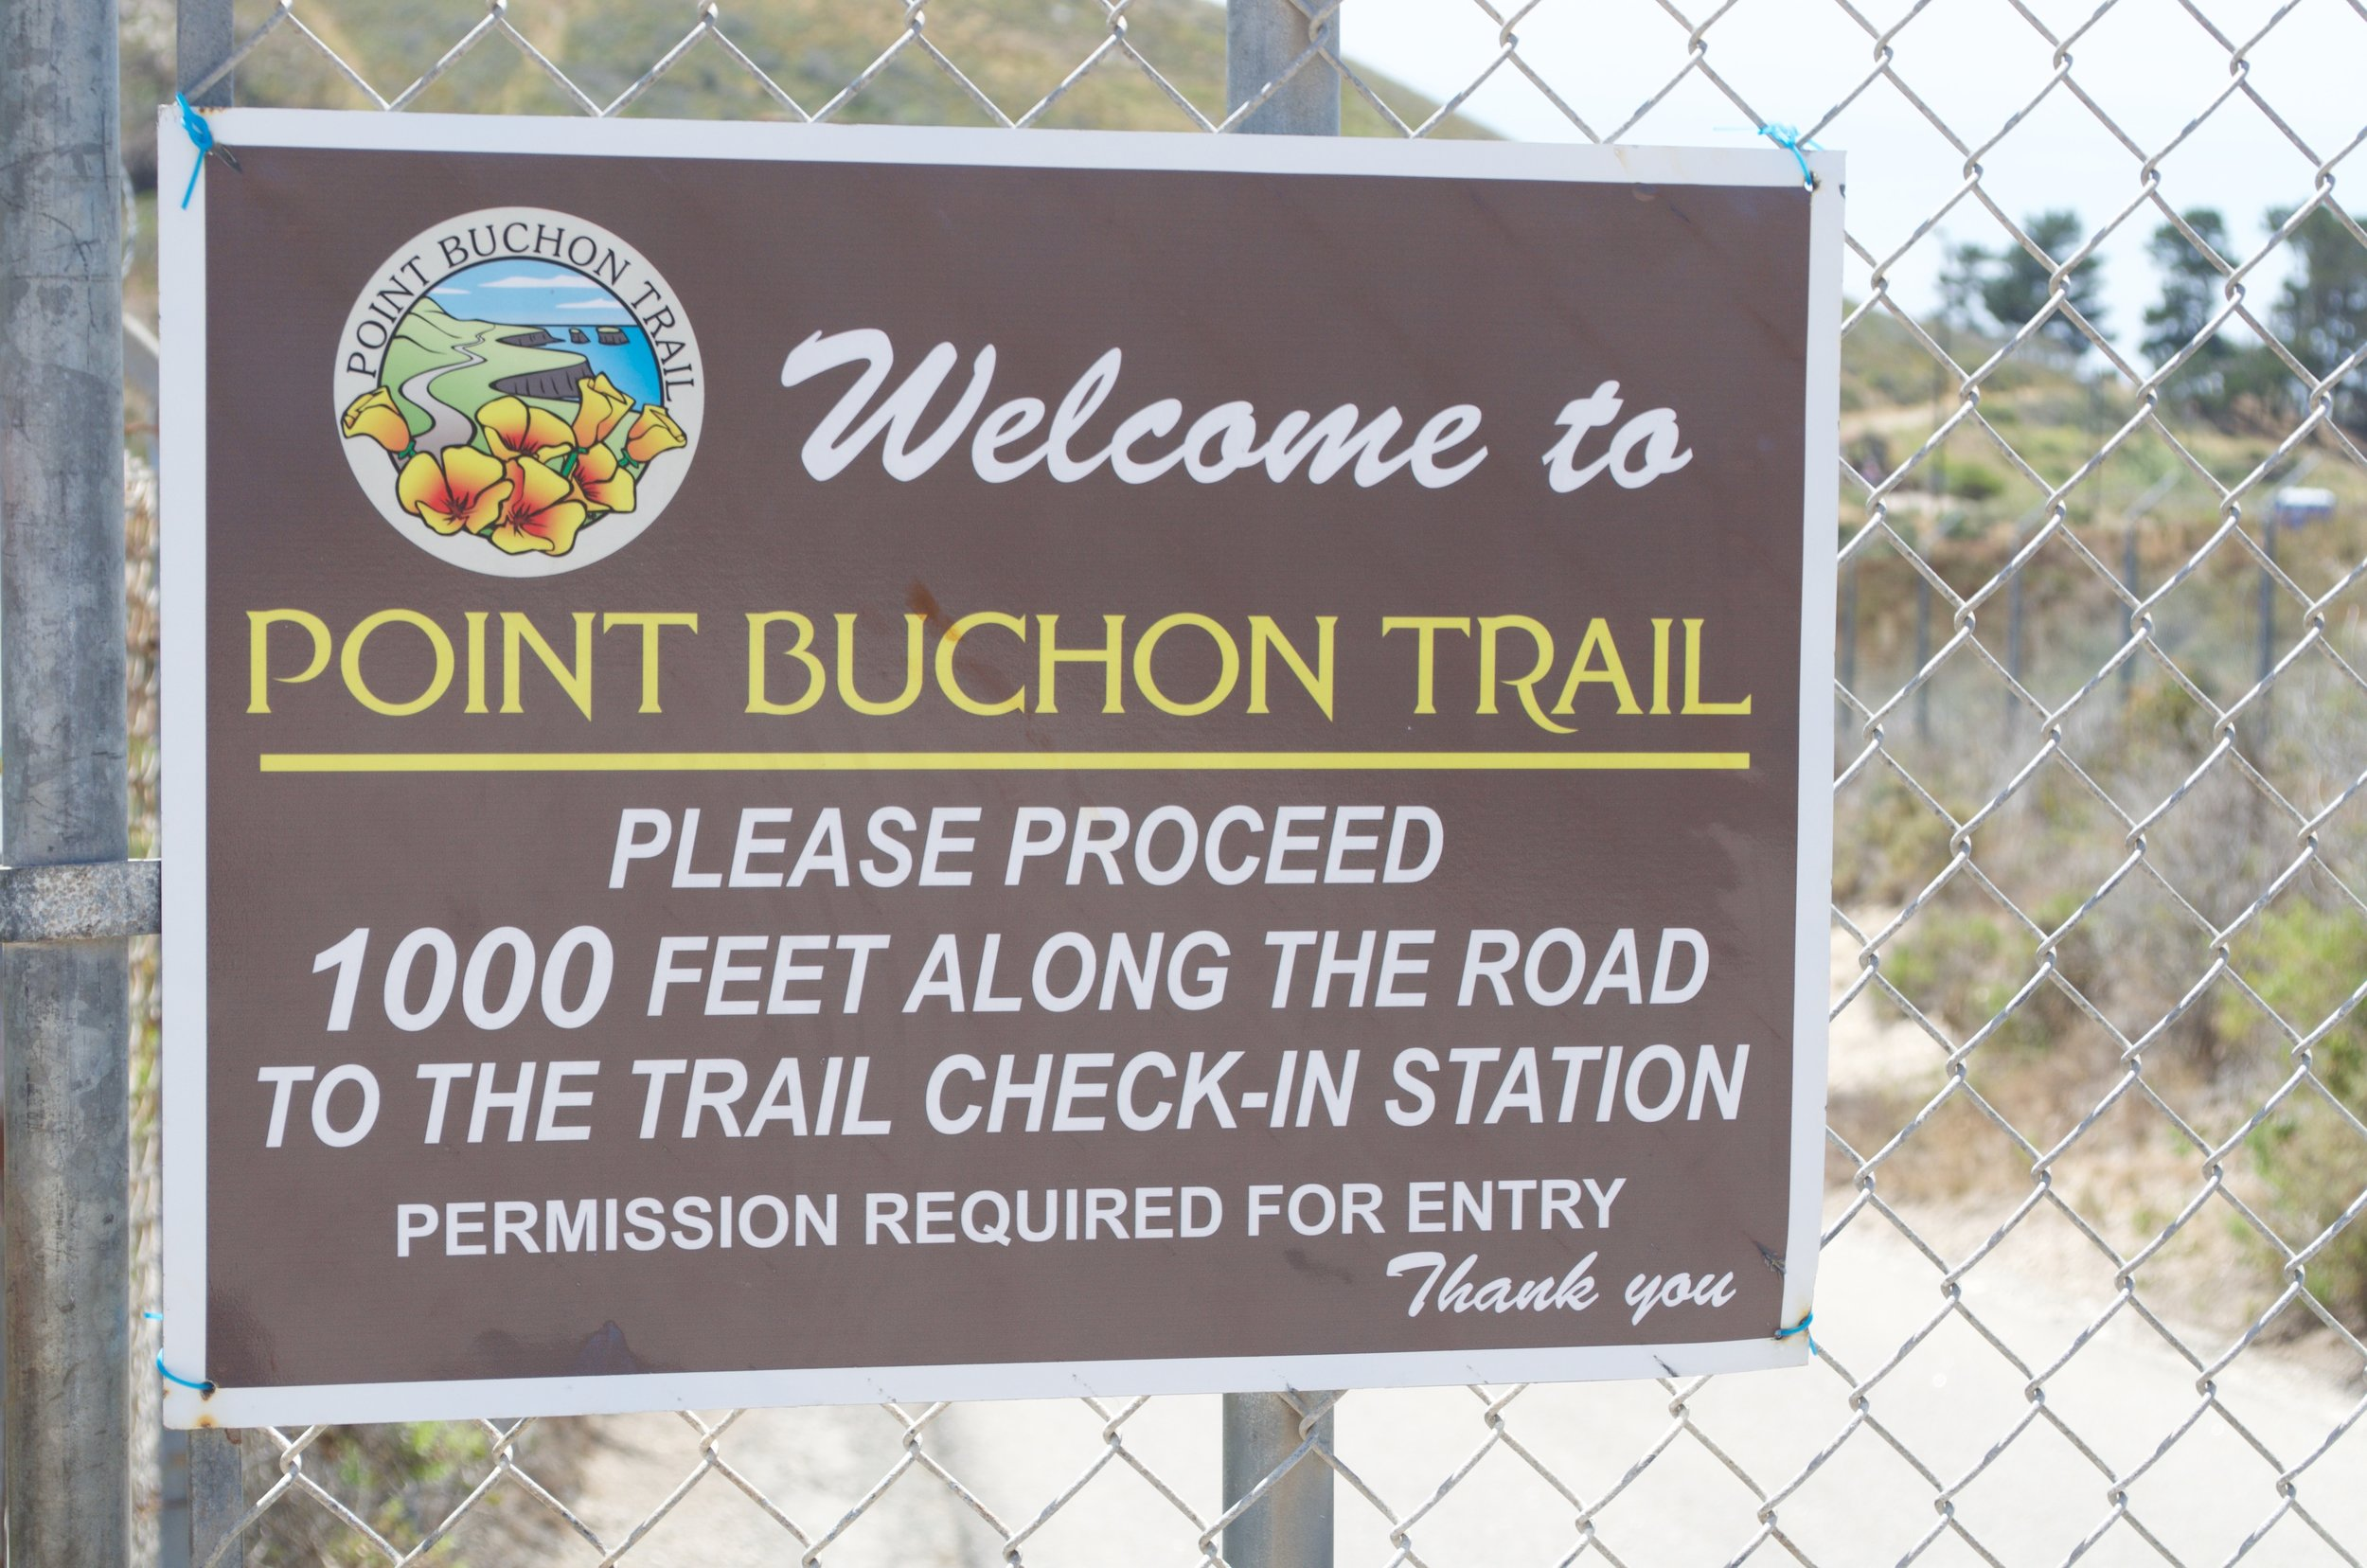 The sign leading into the trail.